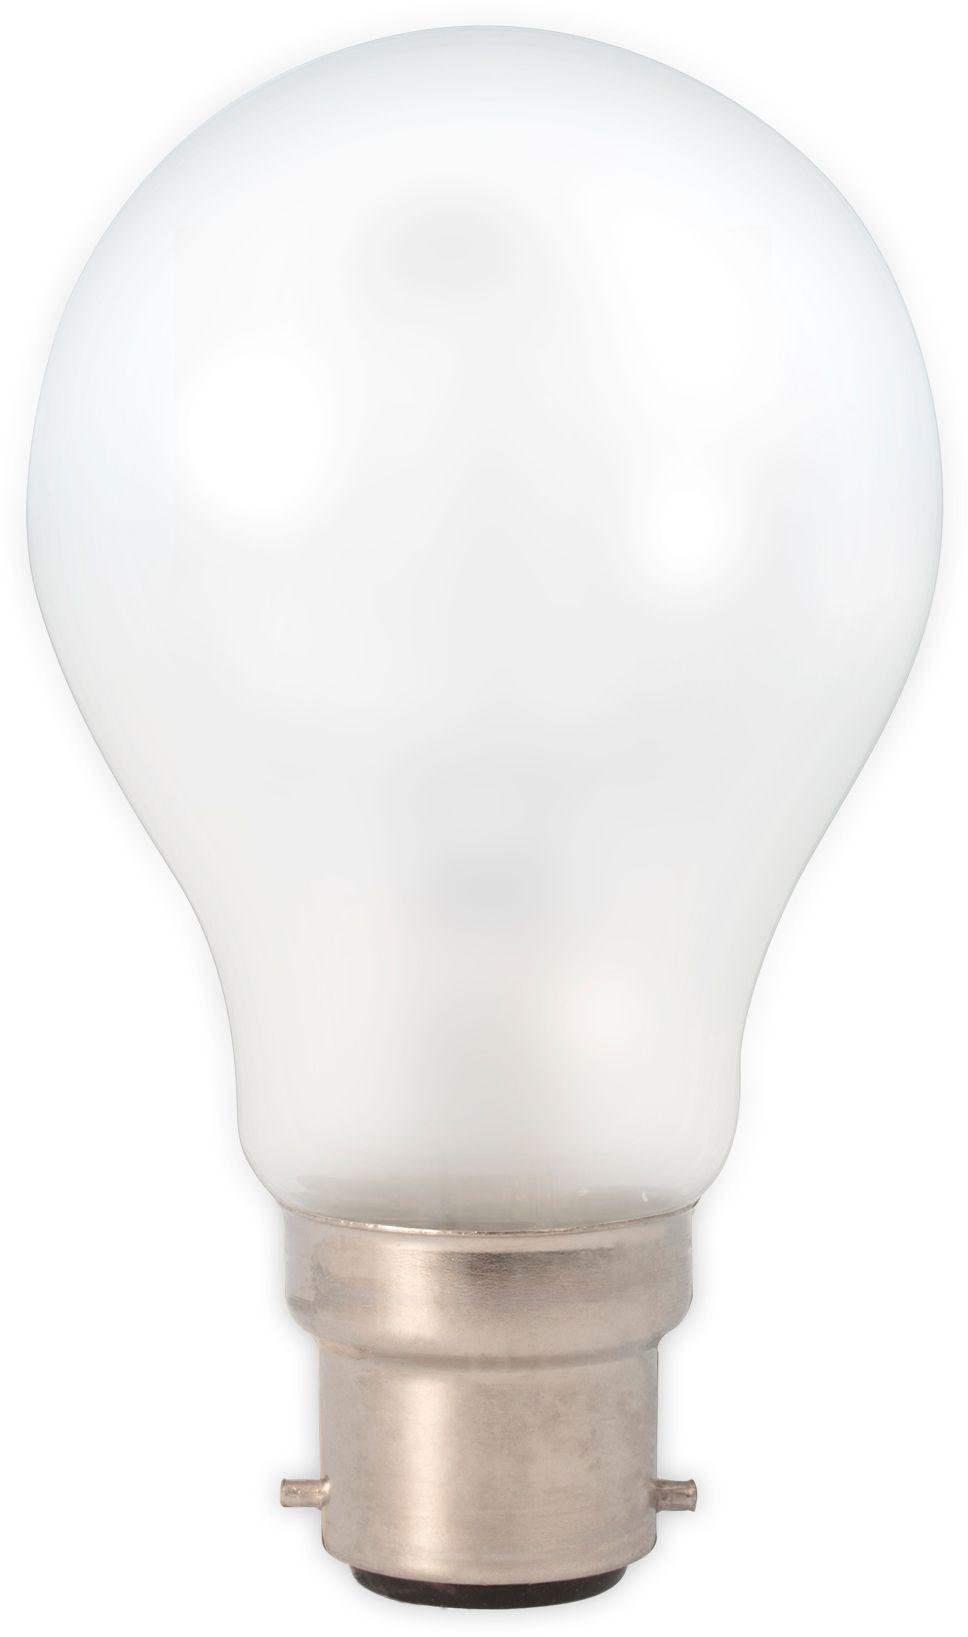 Image of Calex 6W LED Filament GLS B22 Warm White Frosted Glass Bulb